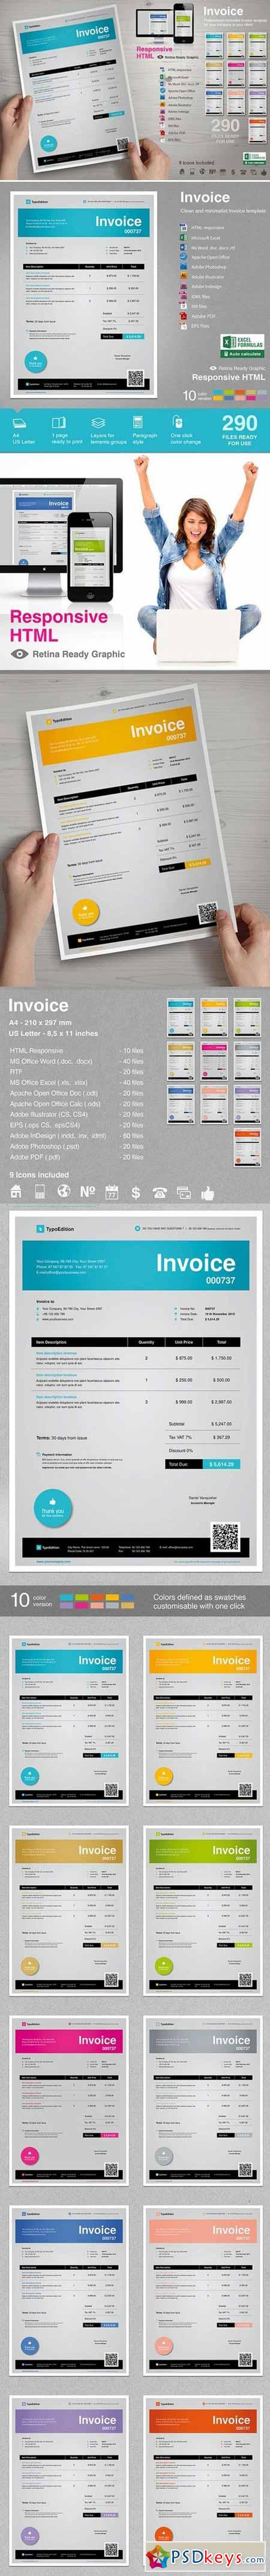 Invoice Stationery Template 407743 » Free Download Photoshop Vector ...